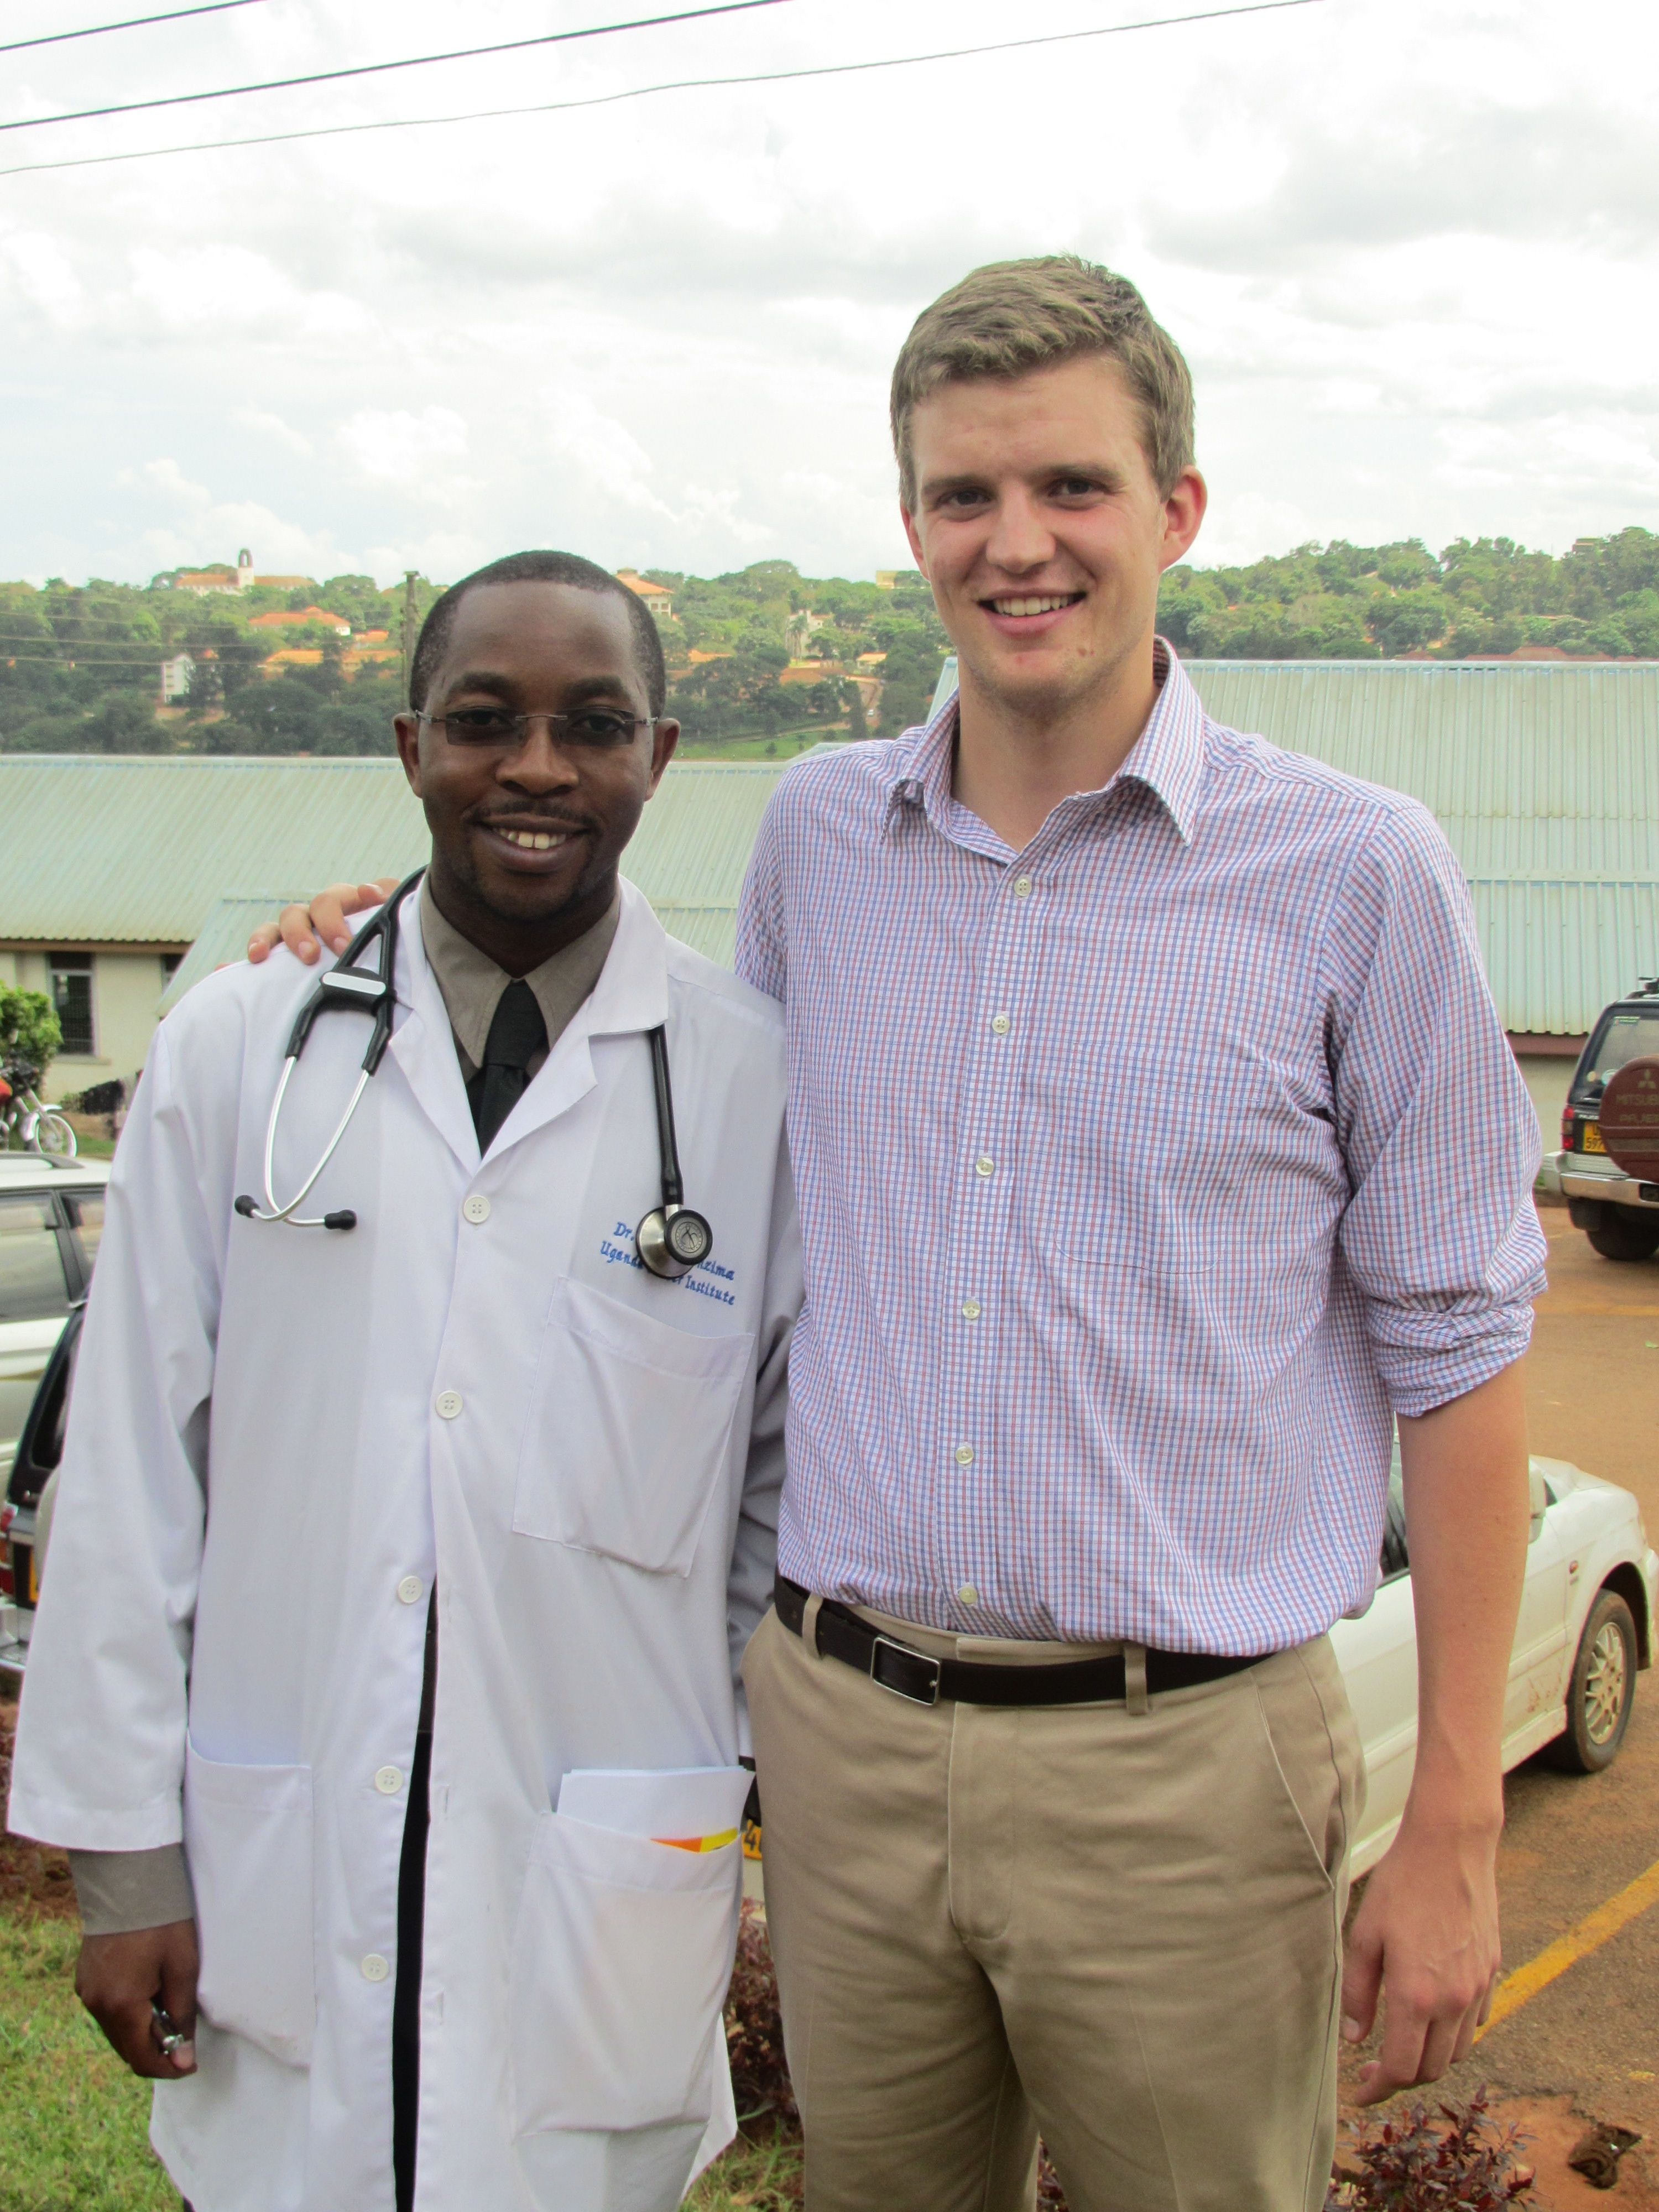 Global Cancer From the Perspective of an MSc-GH Alum - Inside the Duke Master of Science in Global Health Blog